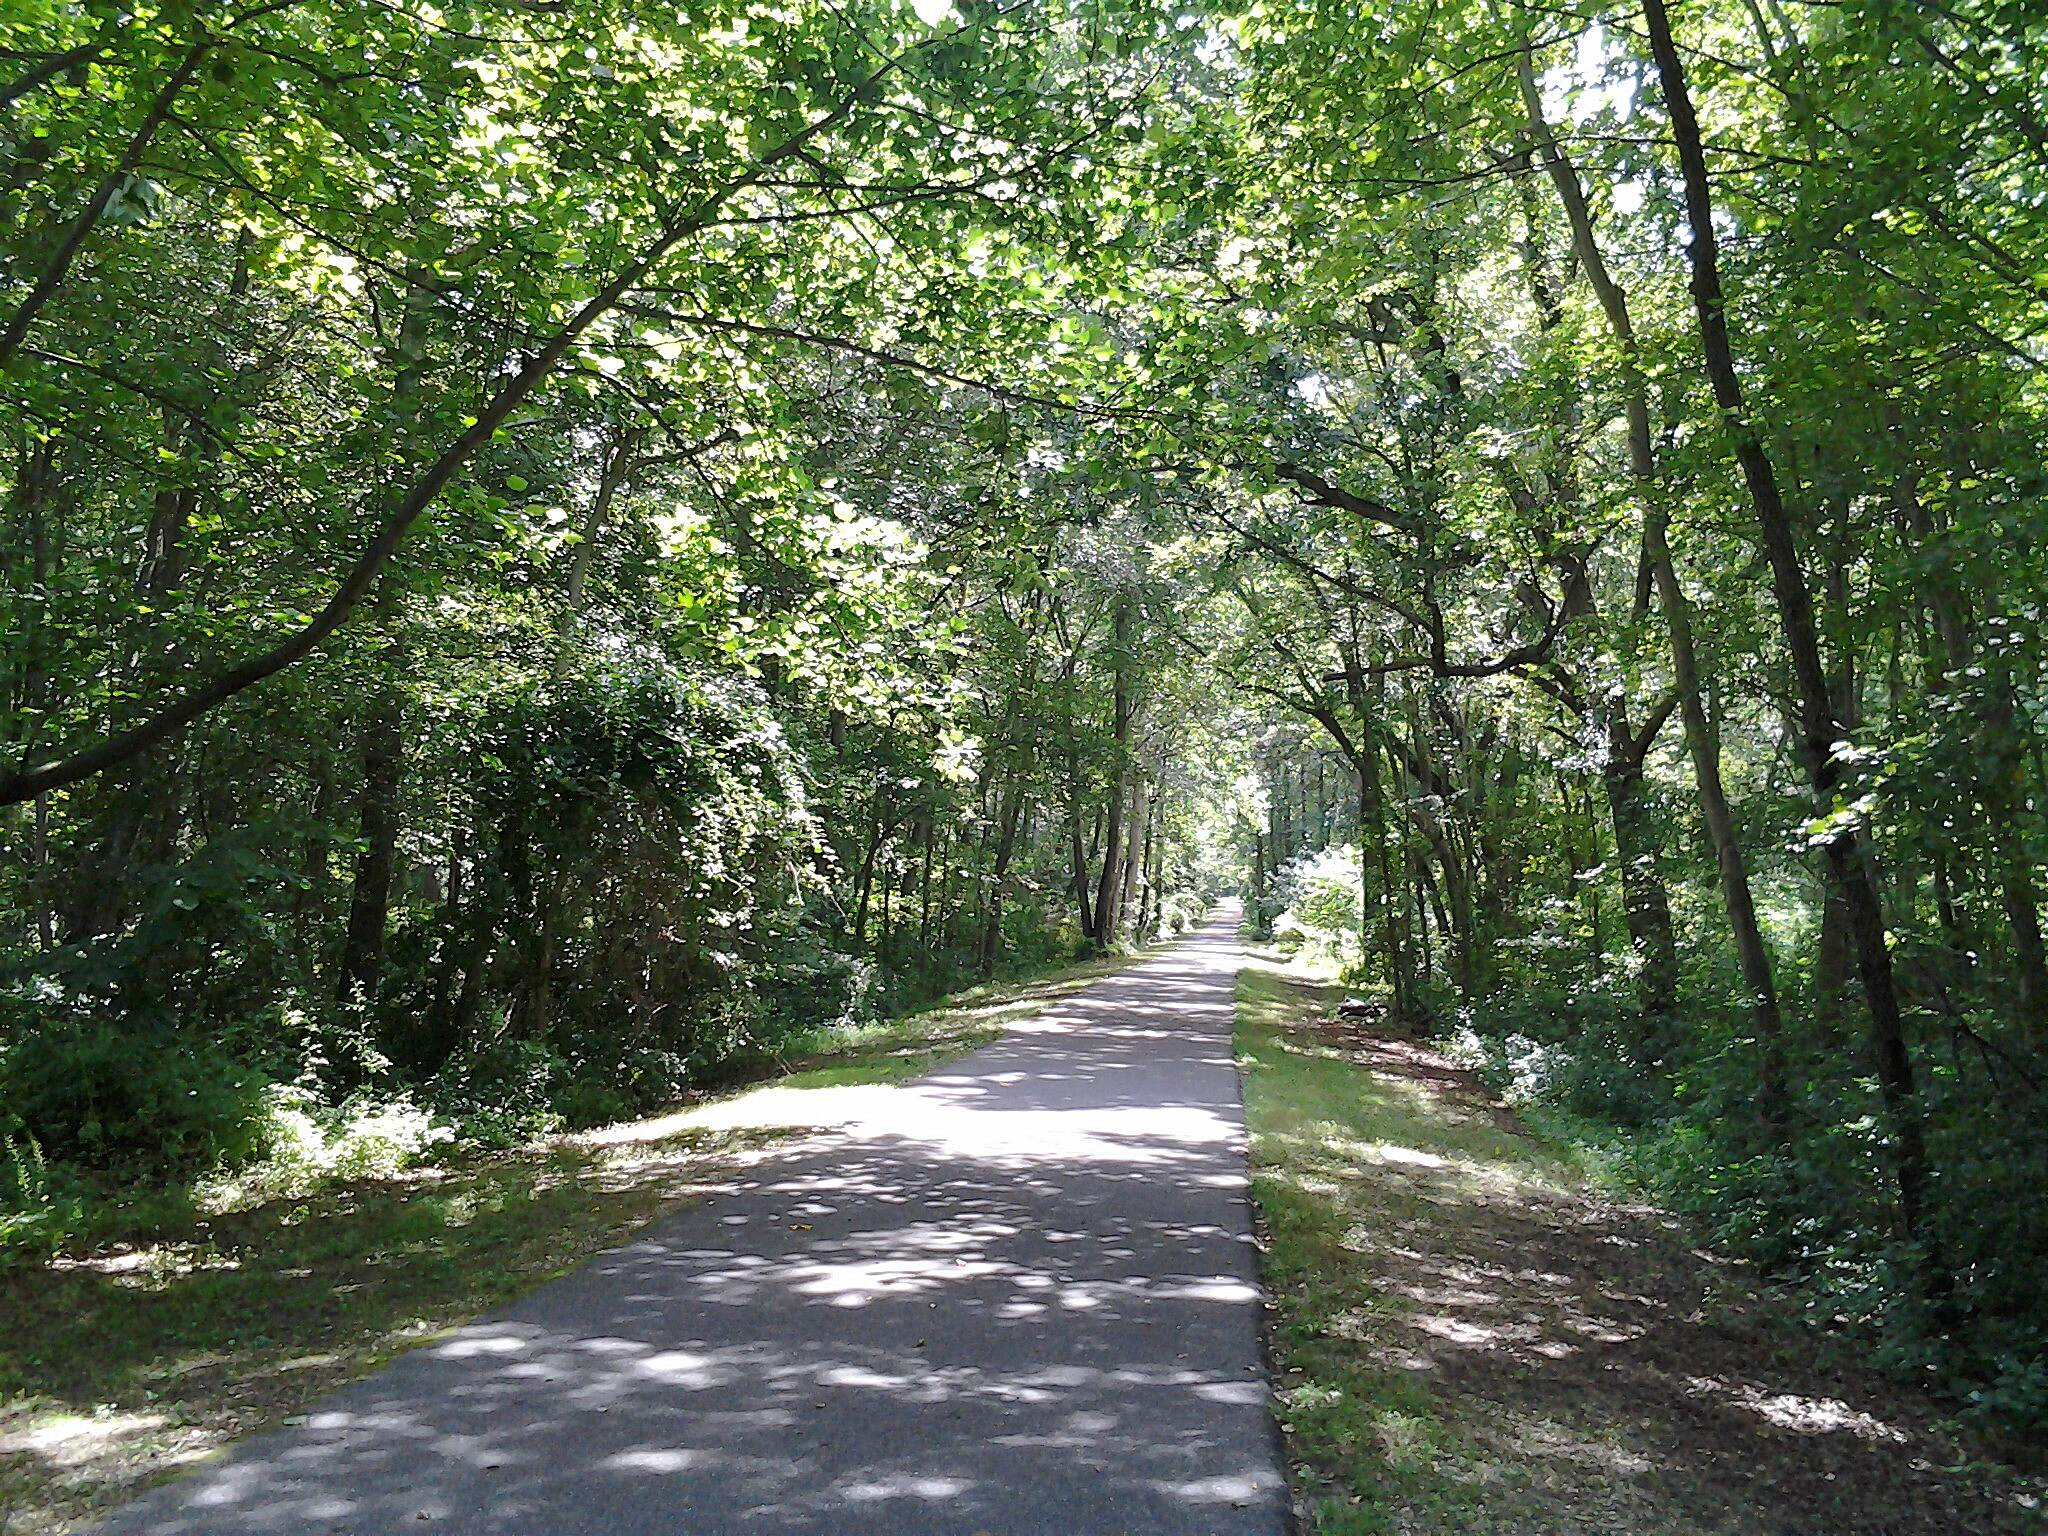 Monroe Township Bikeway Monroe Township Bikeway Beautiful trail,tree line most of the way.2014